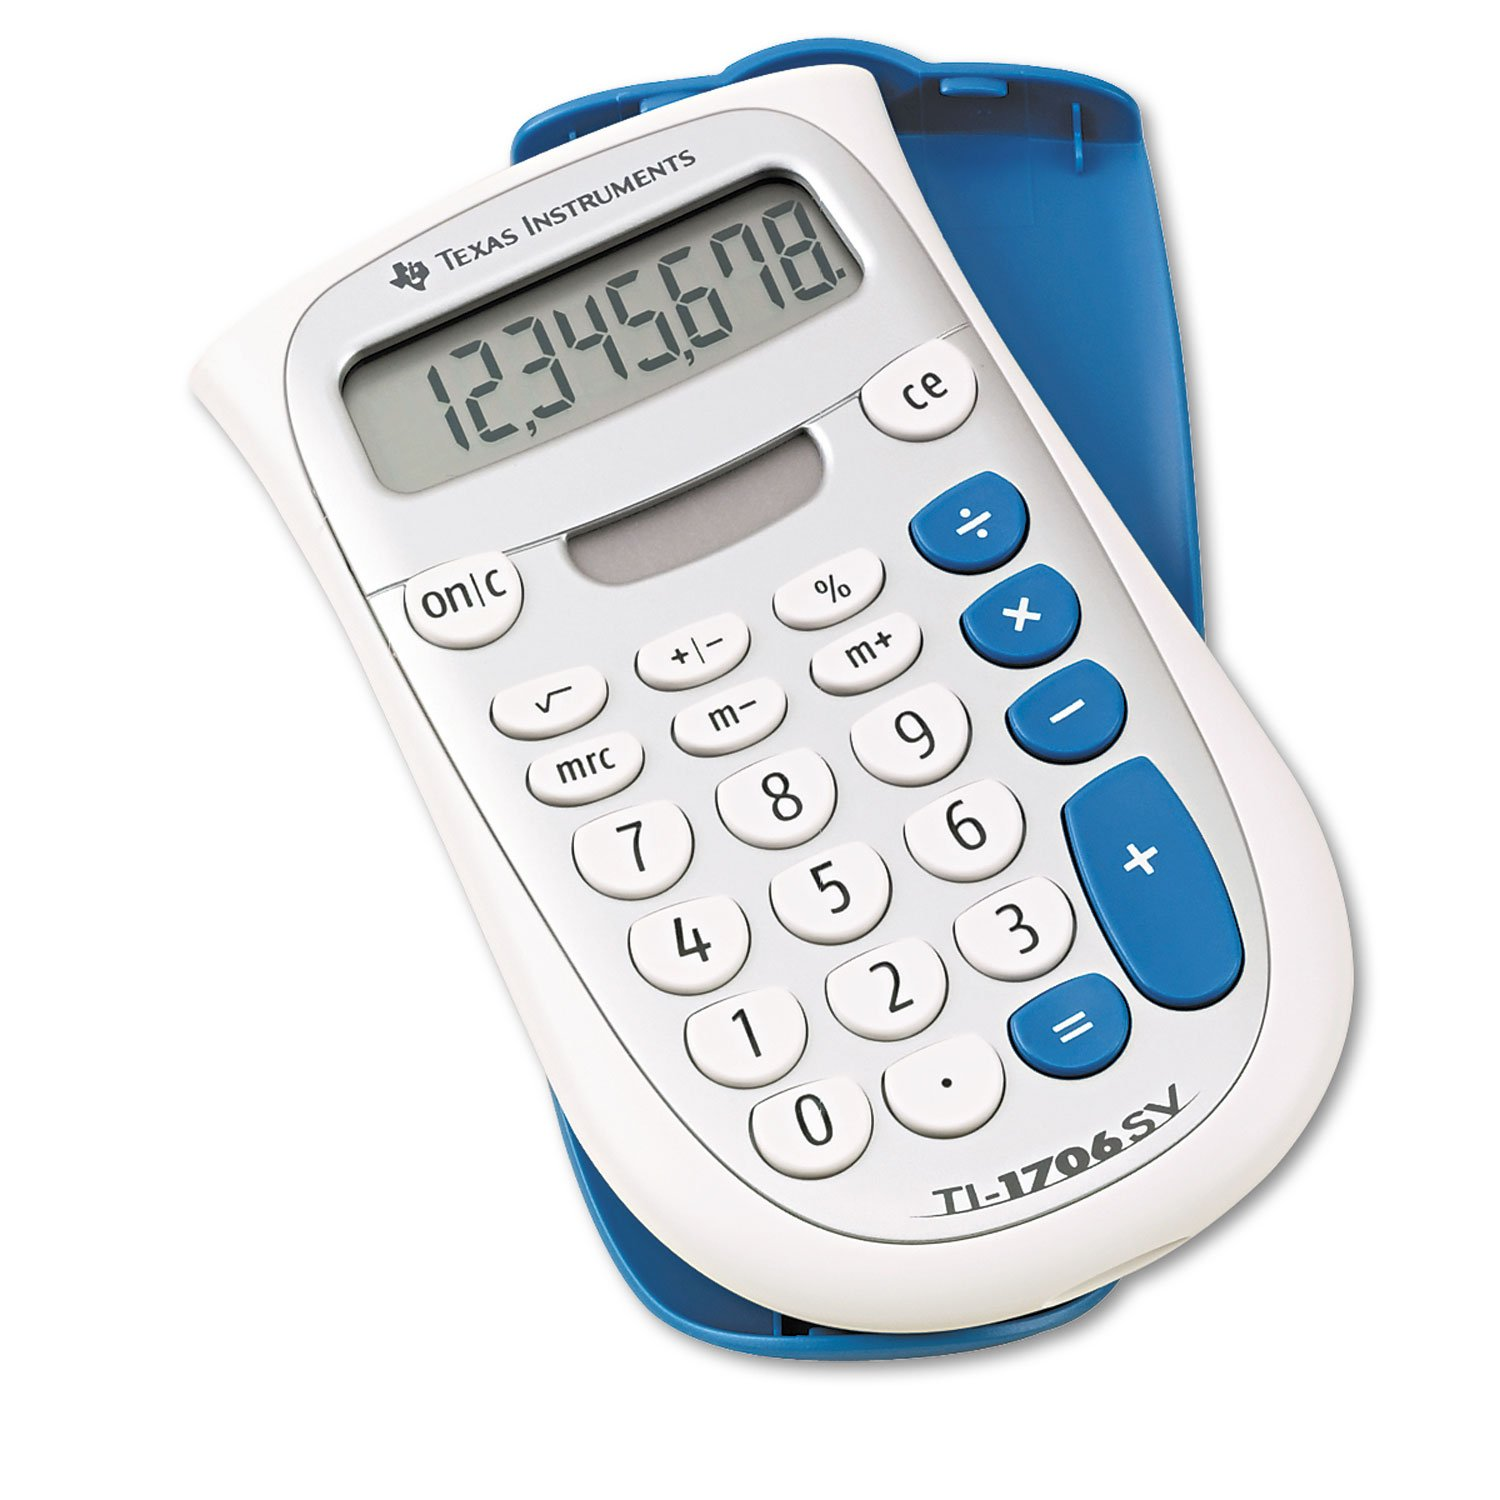 TI-1706SV Handheld Pocket Calculator, 8-Digit LCD Texas TI1706SV DOBA-TEXTI1706SV